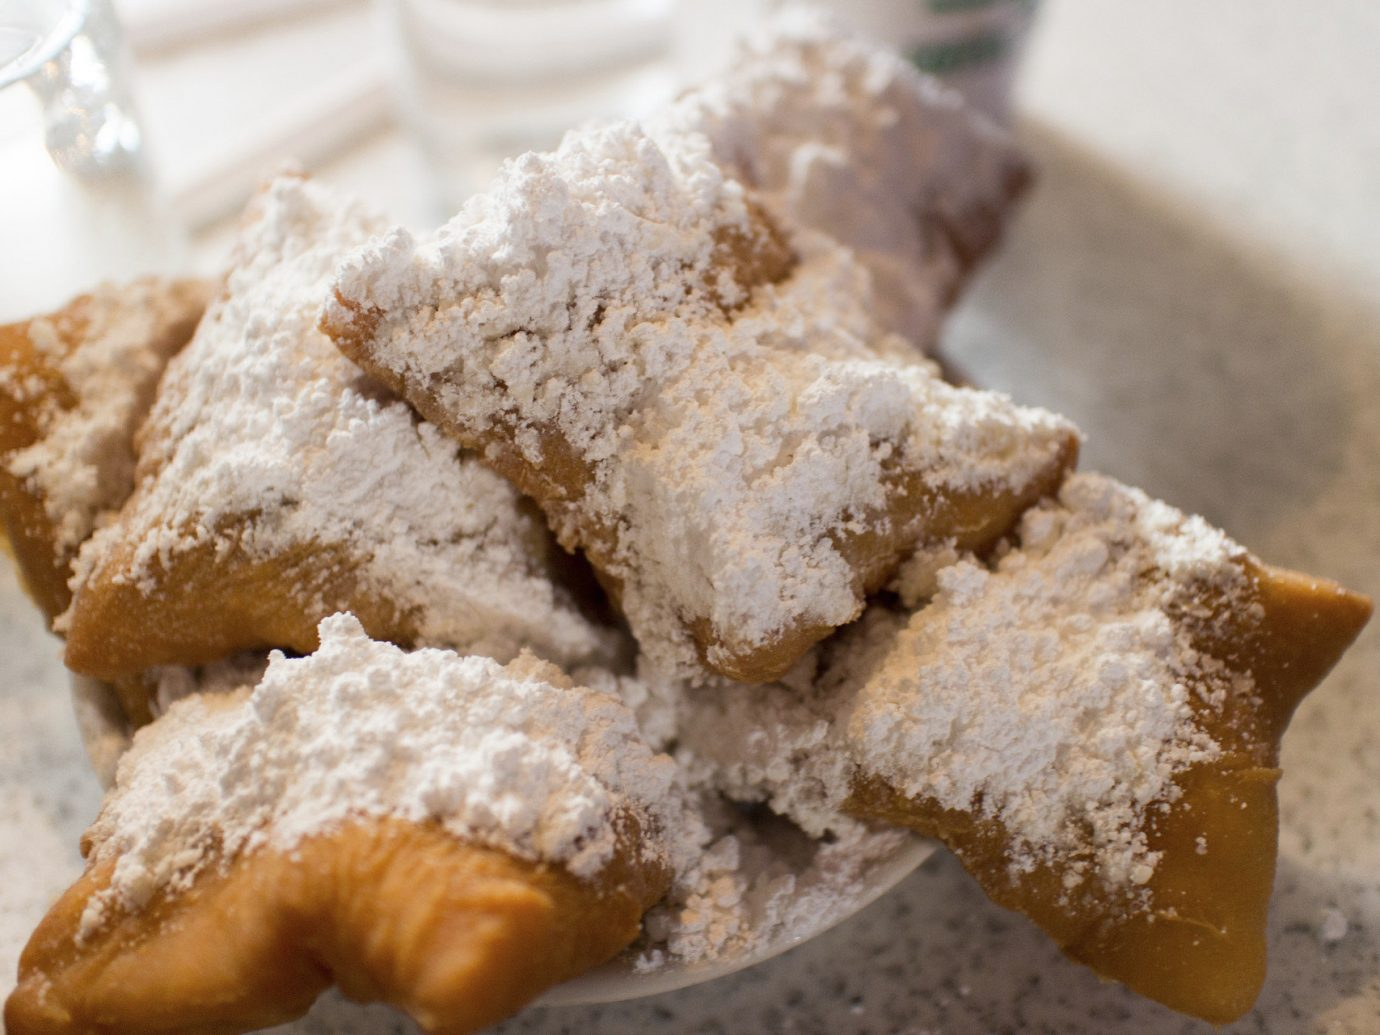 Trip Ideas Weekend Getaways food dish doughnut piece dessert half powdered sugar cuisine baked goods eaten baking beignet snack food sugar flavor close